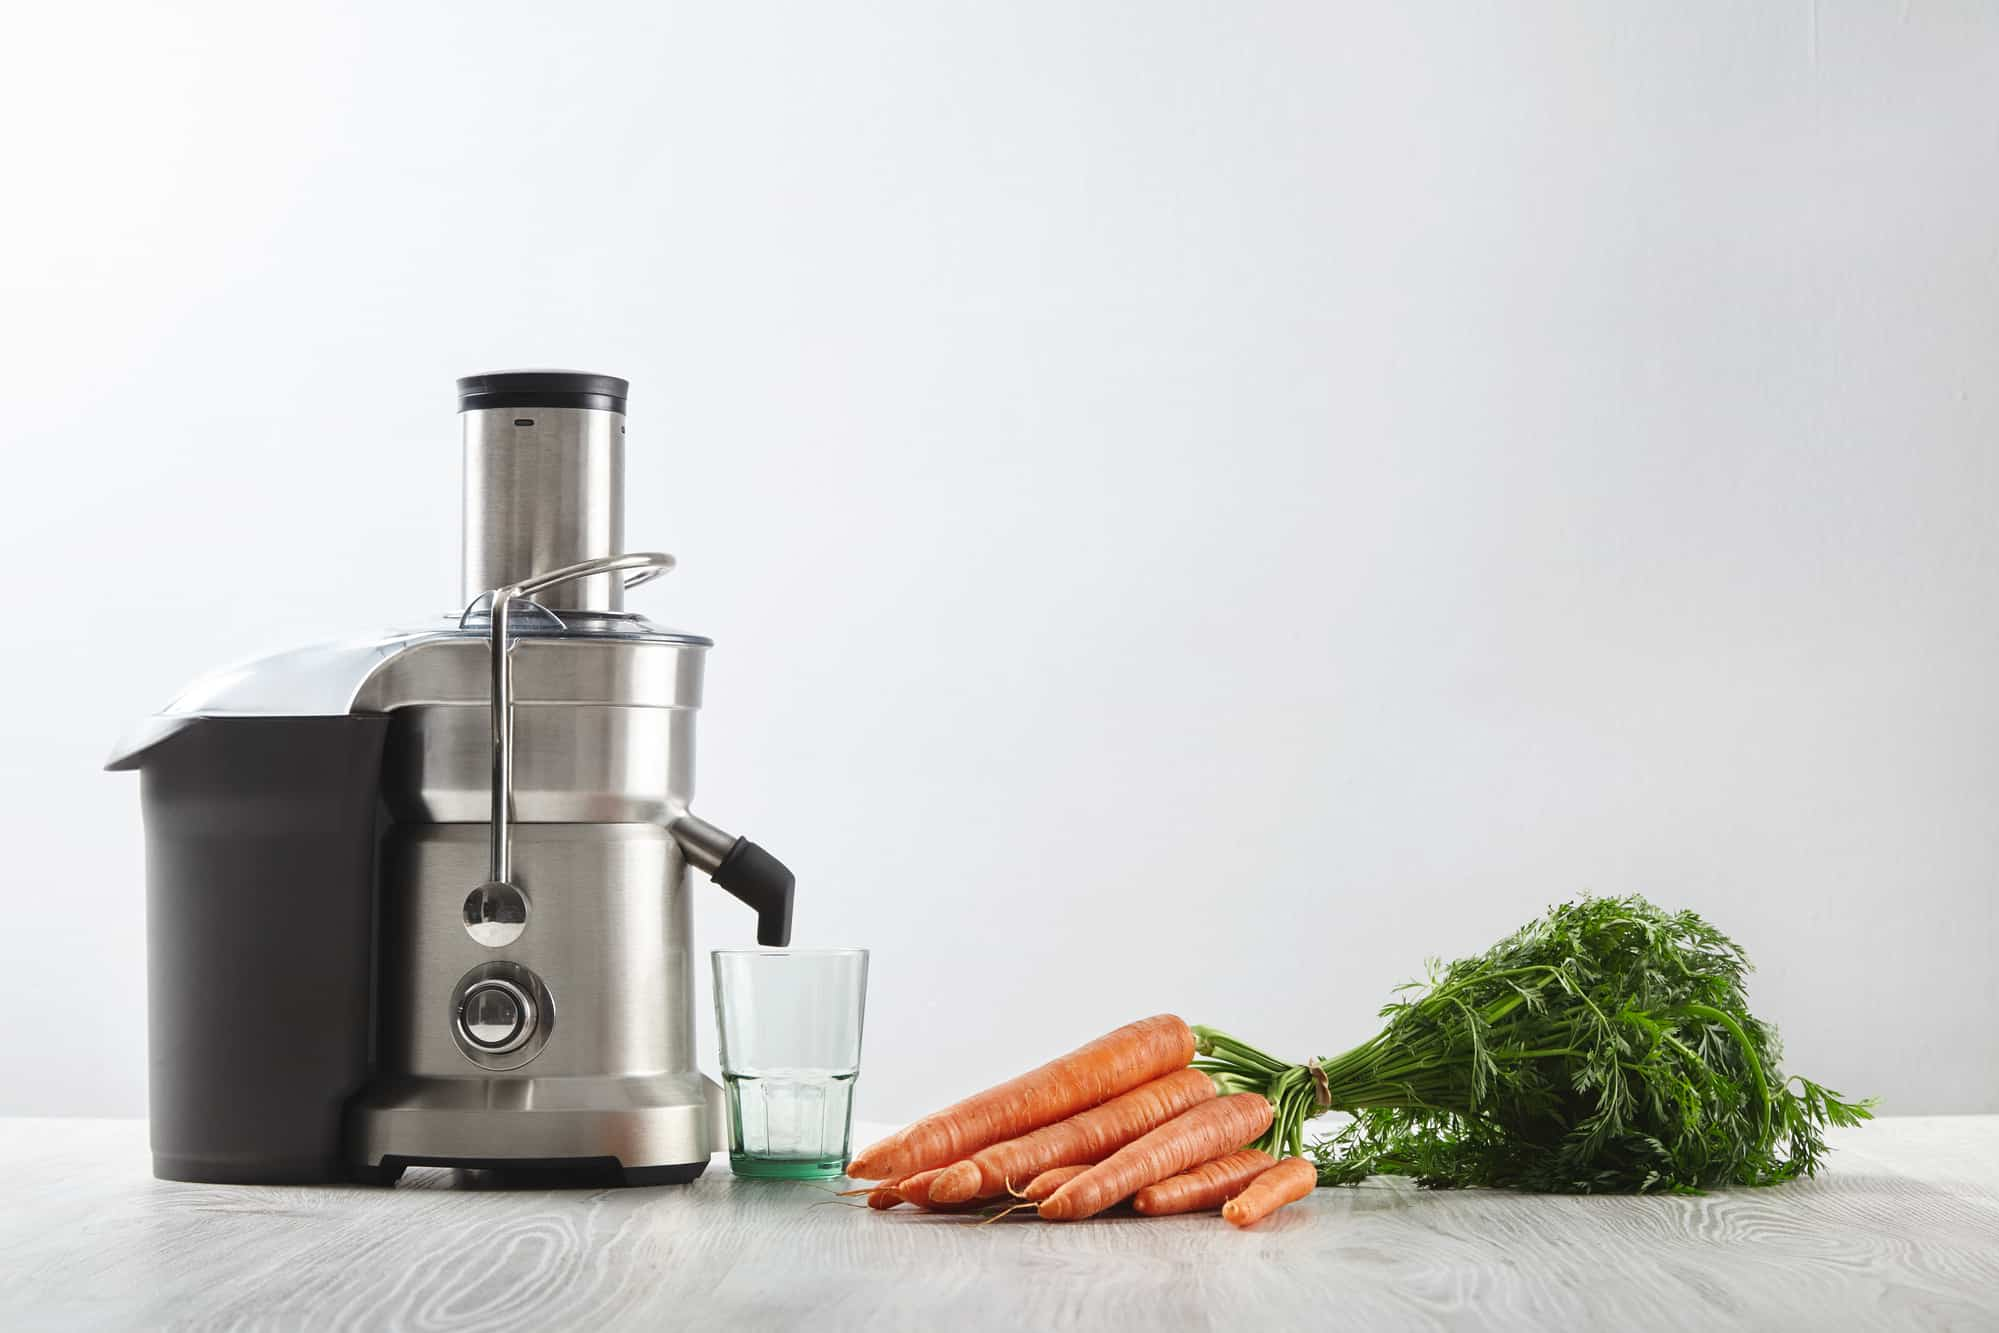 7 Best Juicers In Canada 2020 Review & Guide